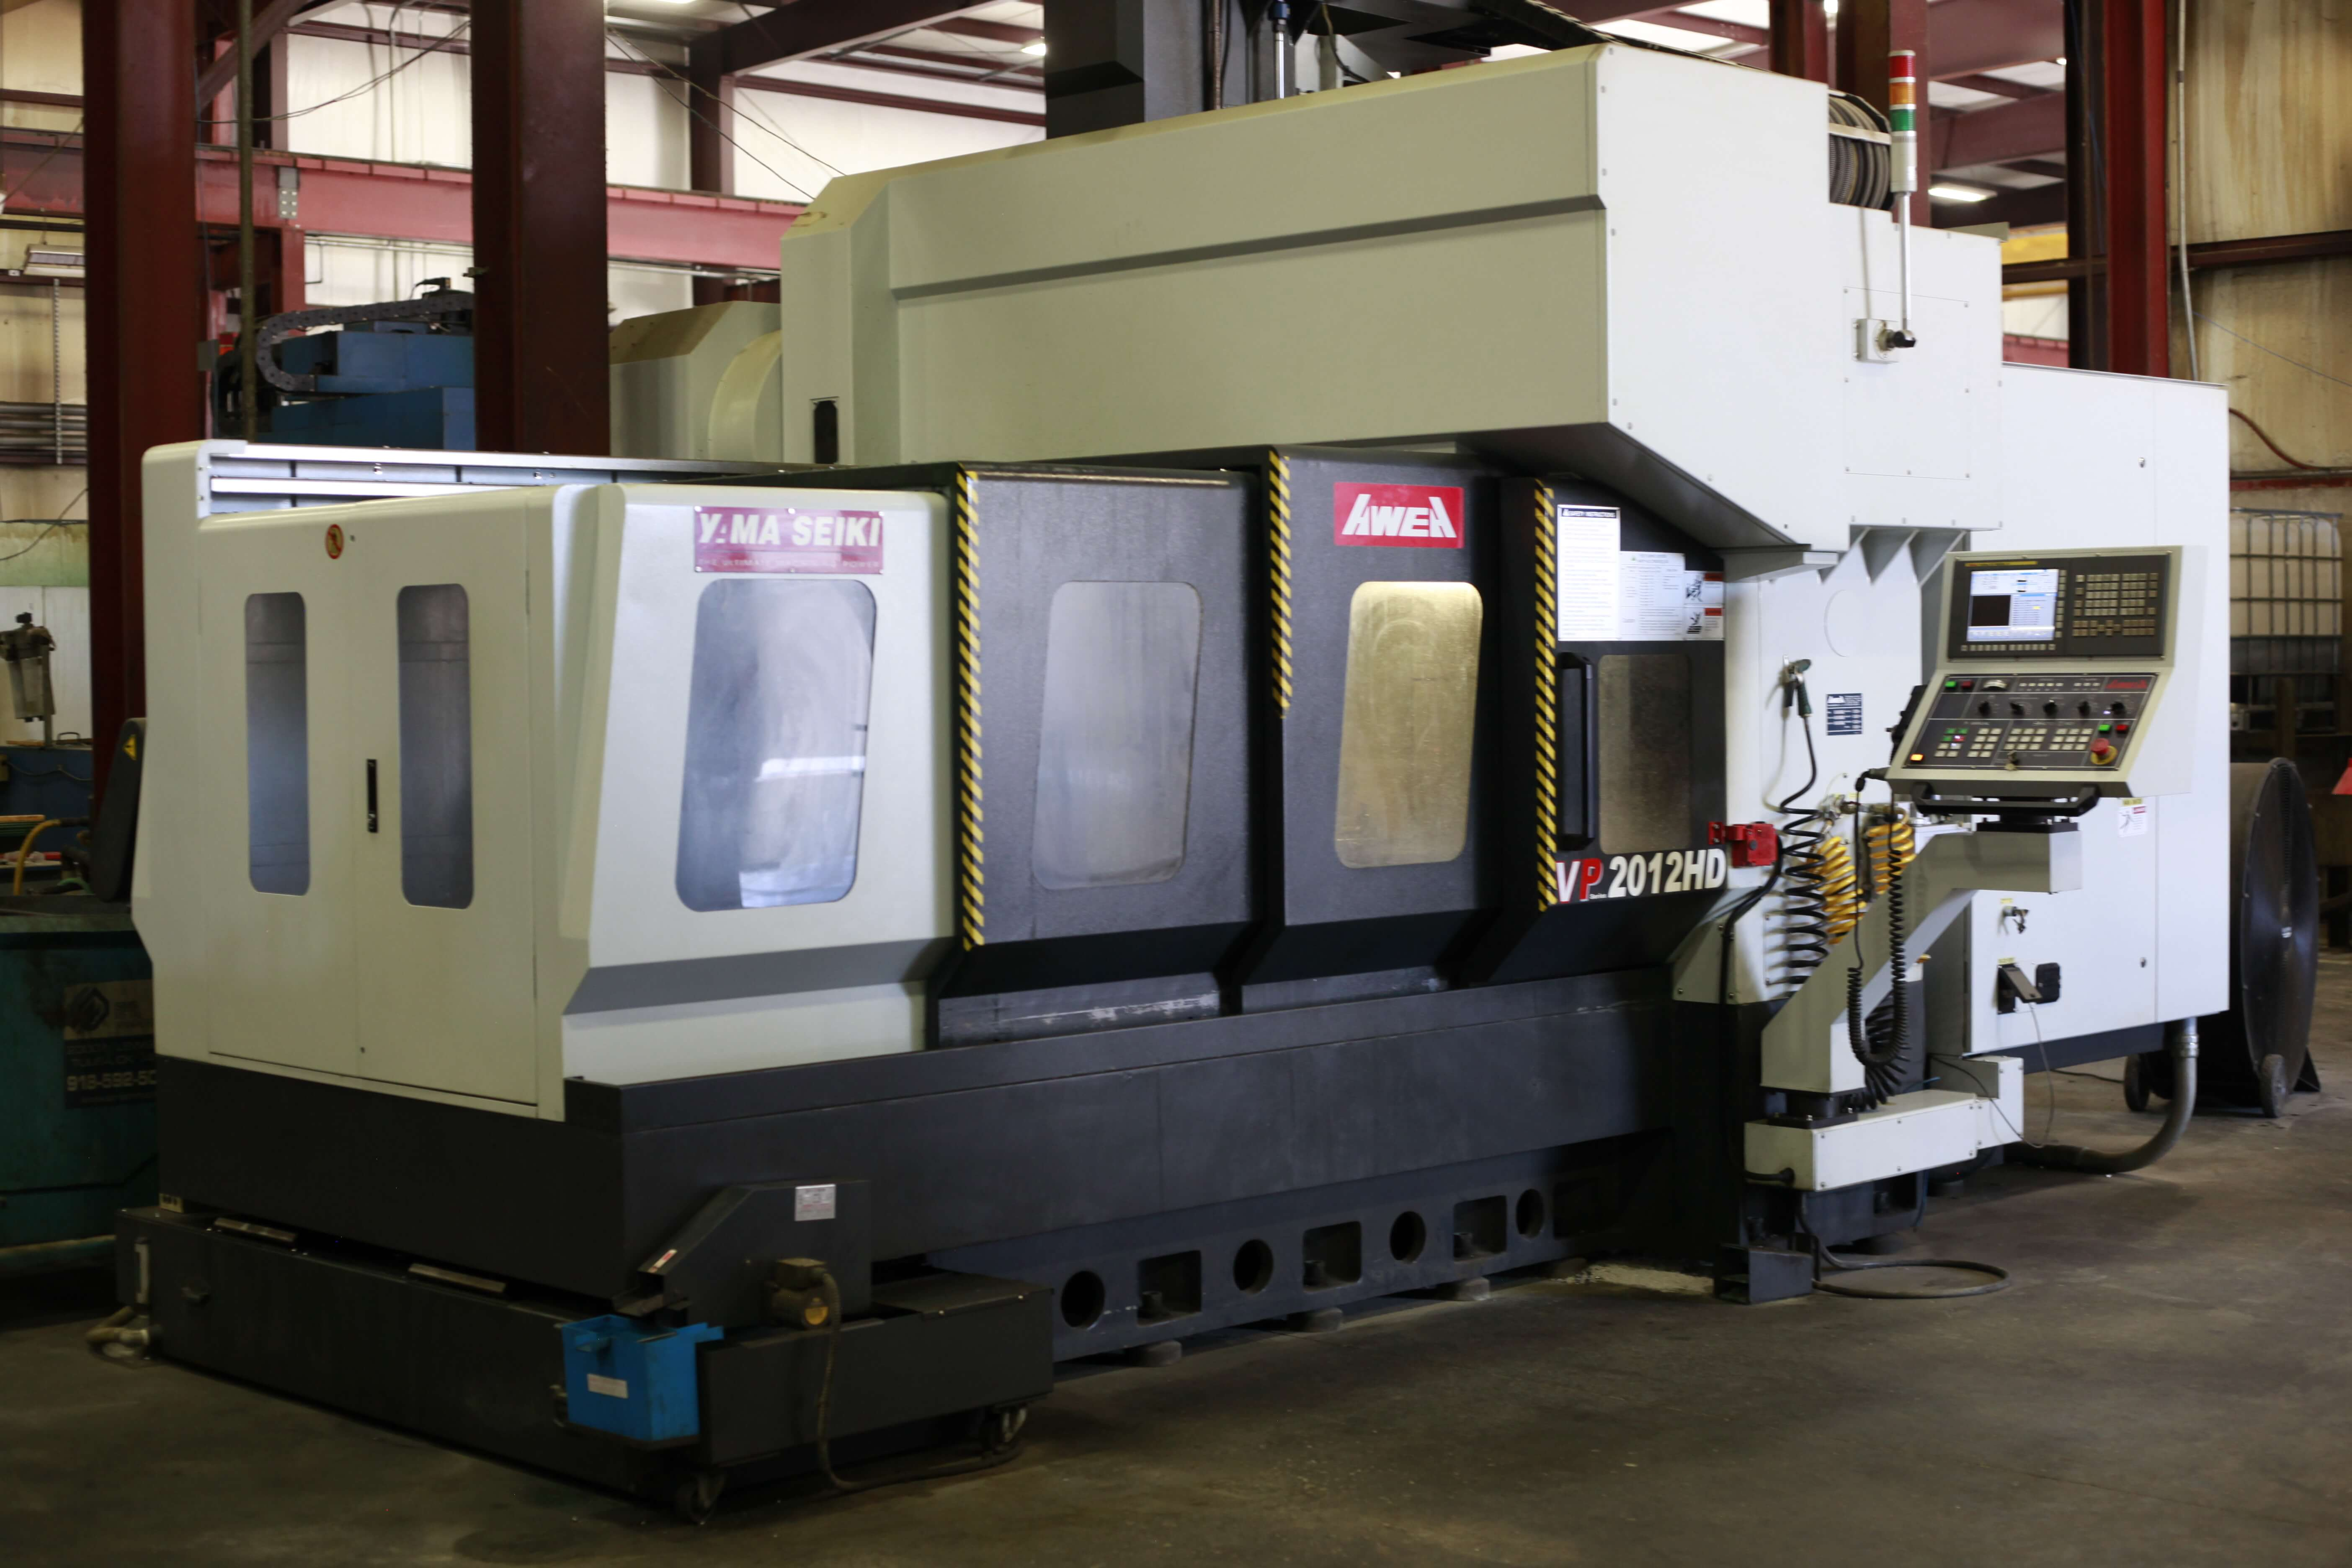 AWEA VP-2012HD Vertical Machining Center